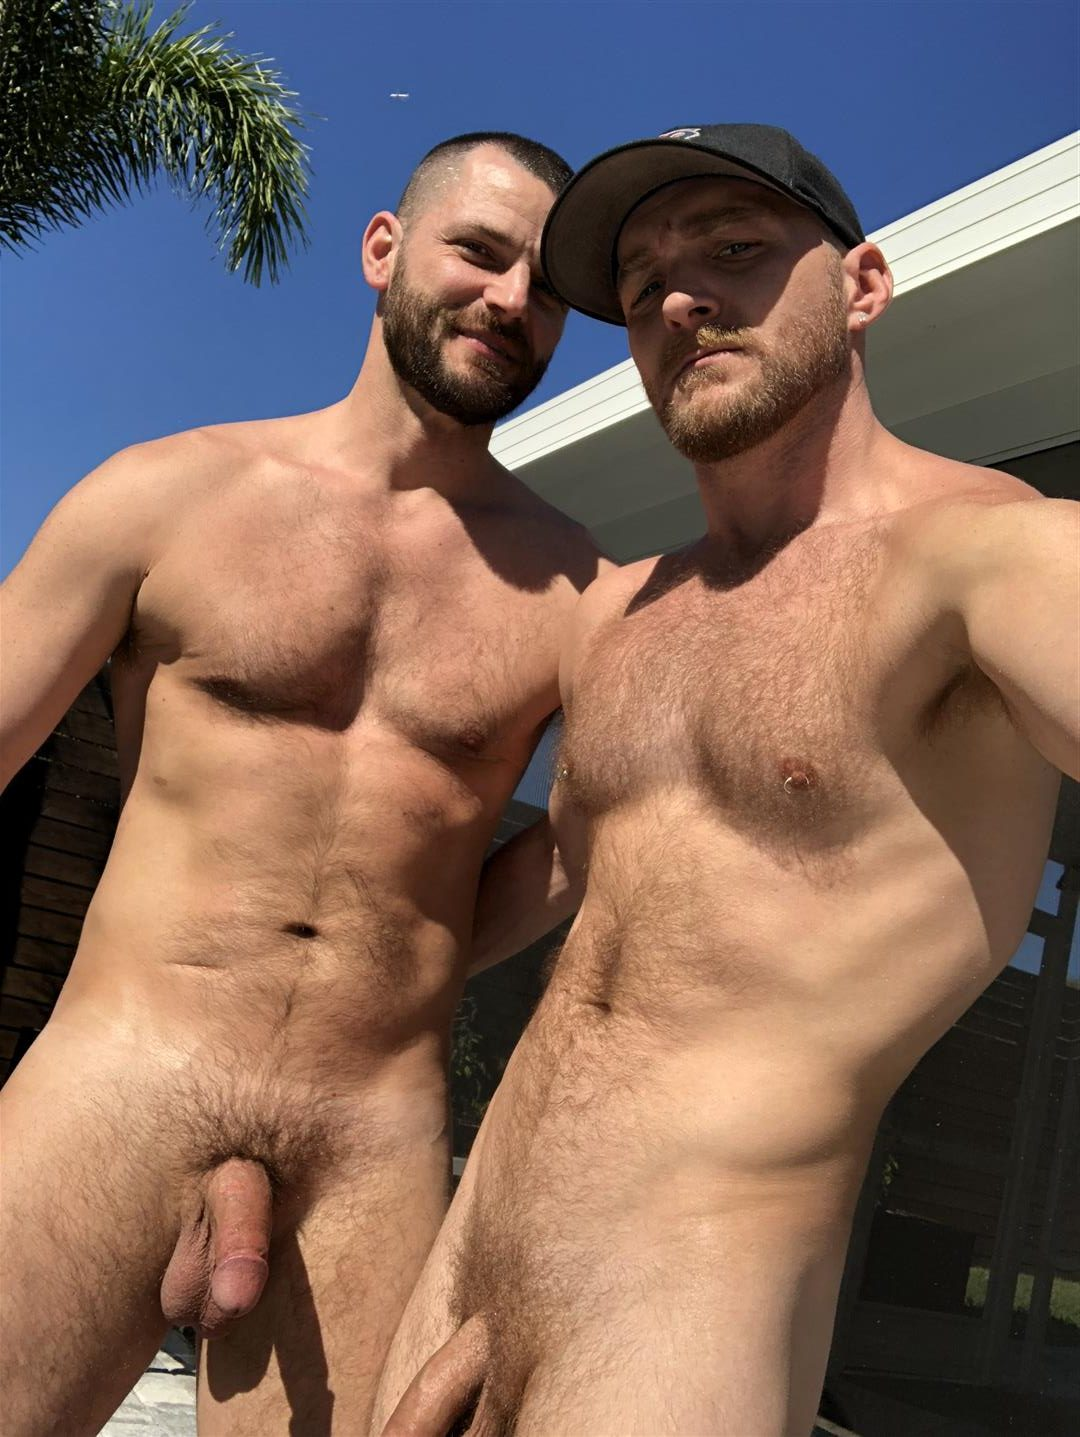 Deviant-Otter-Jake-Naked-Hairy-Guys-Amateur-Bareback-Sex-19-e1522800413865 Outdoor Bareback Flip Fucking With The Deviant Otter